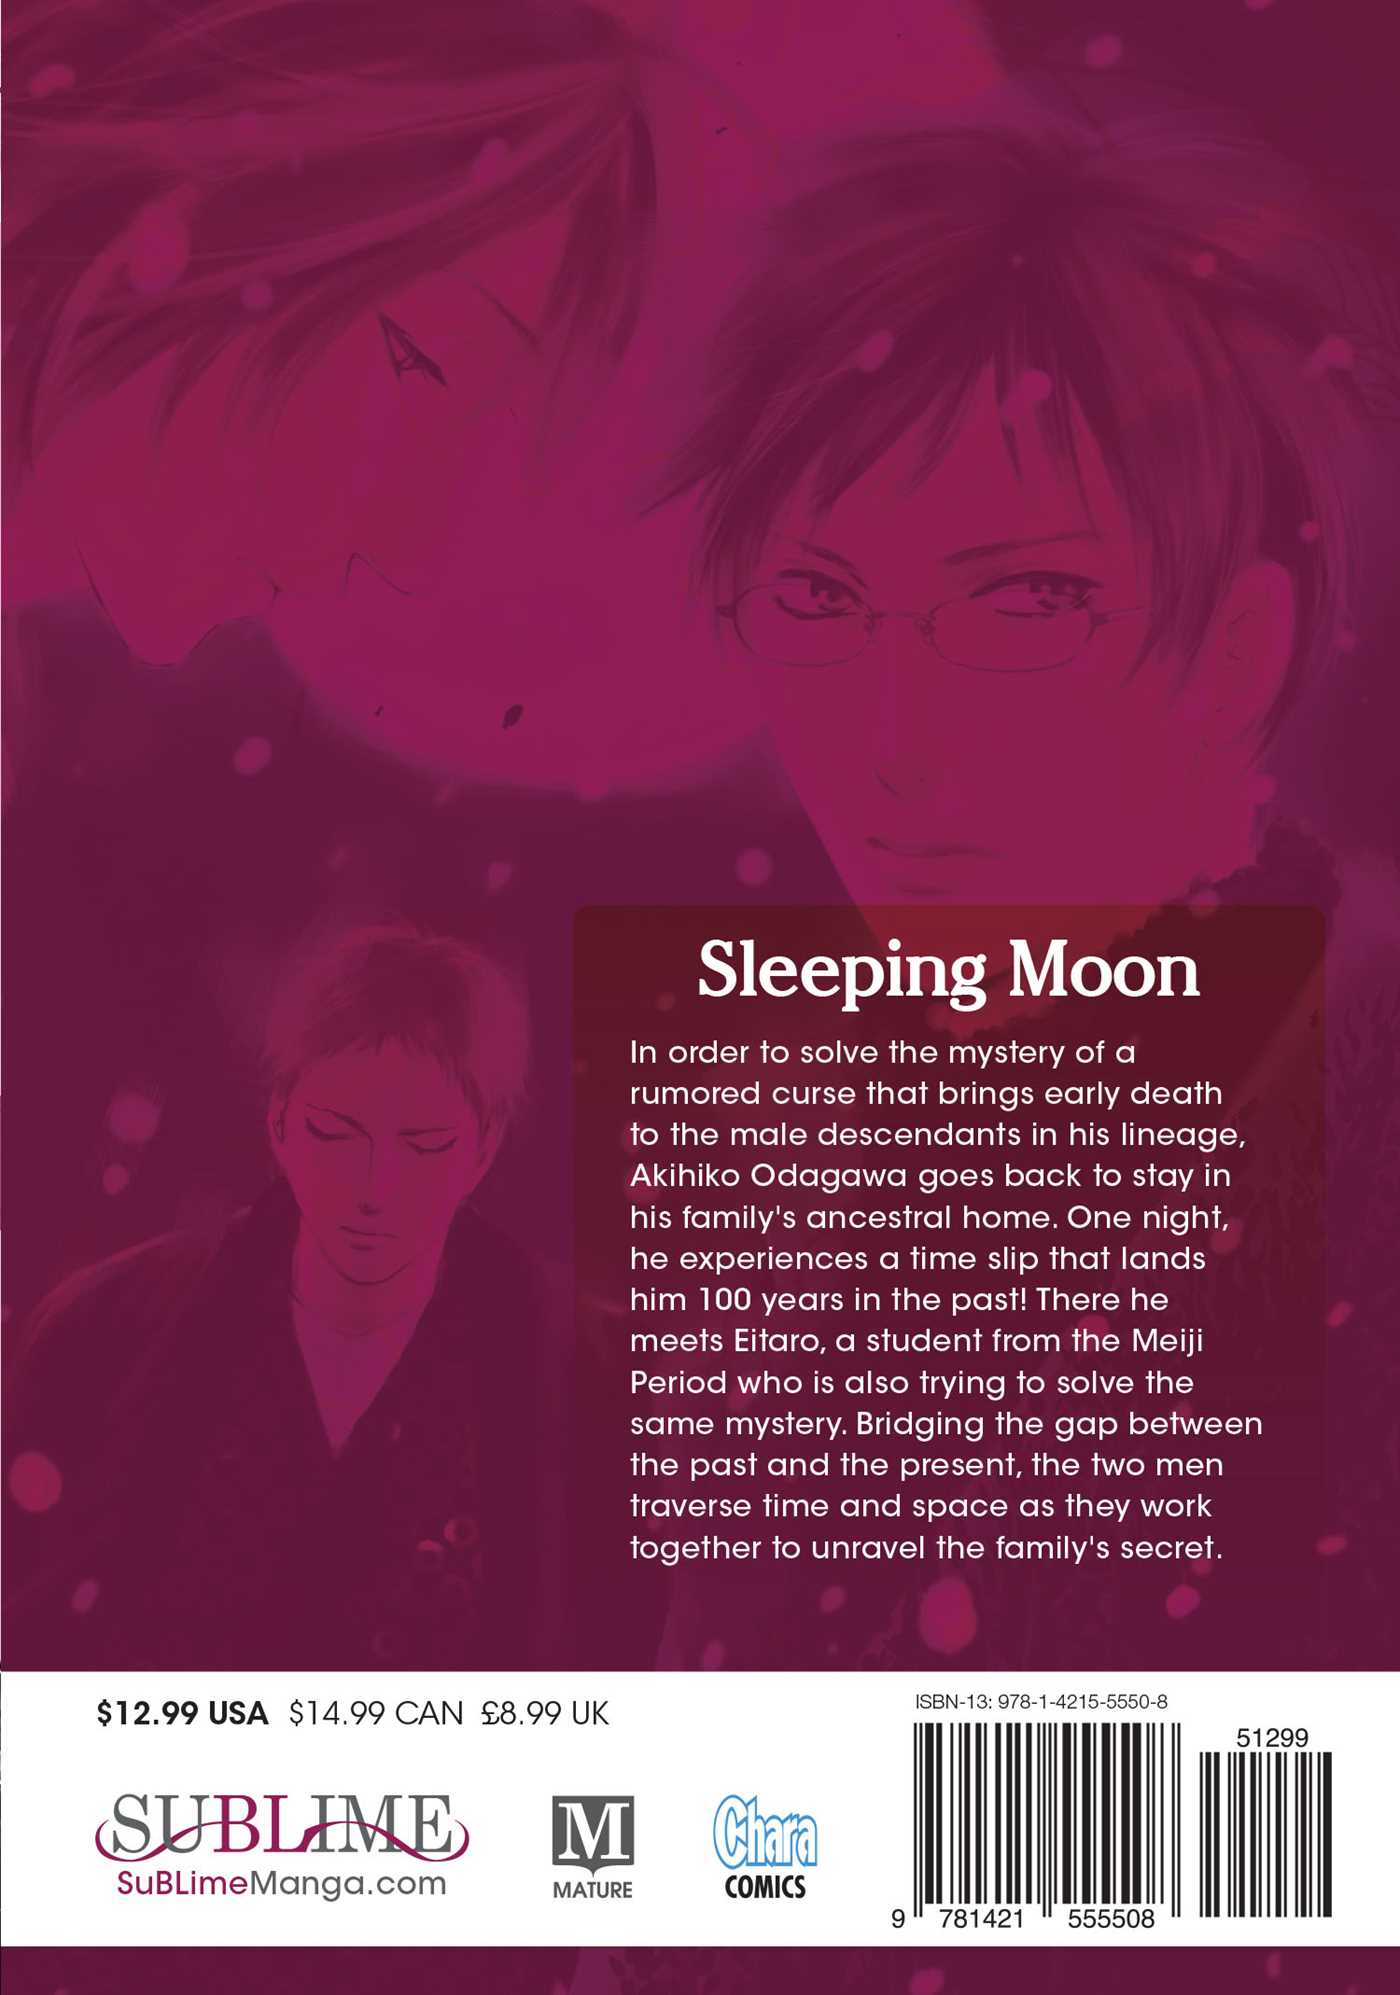 Sleeping moon vol 1 9781421555508 hr back